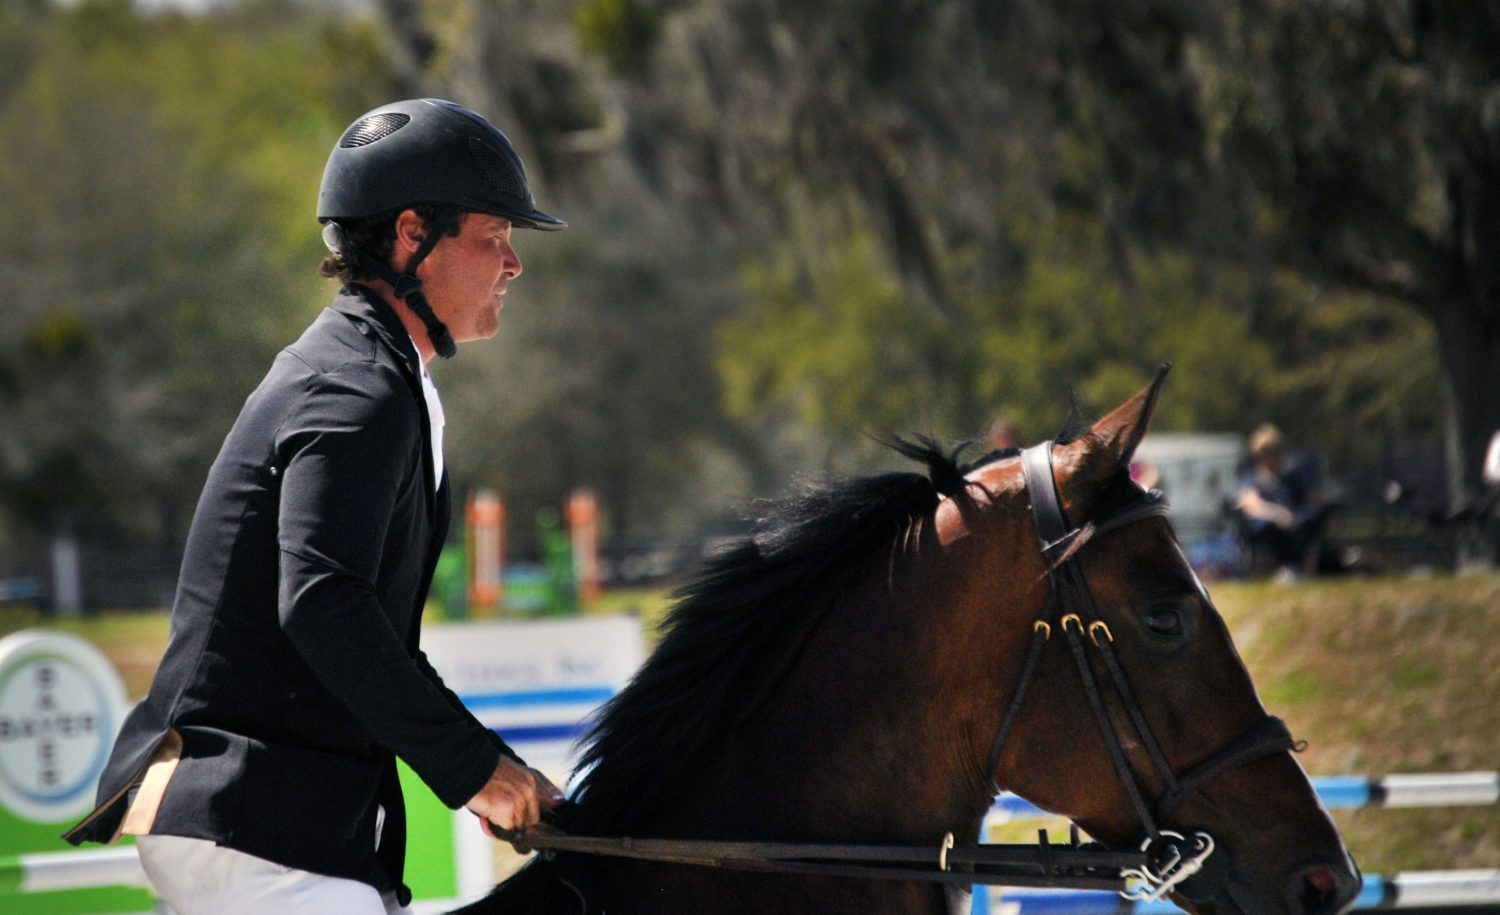 Daniel Damen of Ocala, Fla. starts his round with horse Quintus 66. Damen finished with a time of 82.890 at the $100,000 Sullivan GMC Truck Grand Prix at HITS on Sunday.